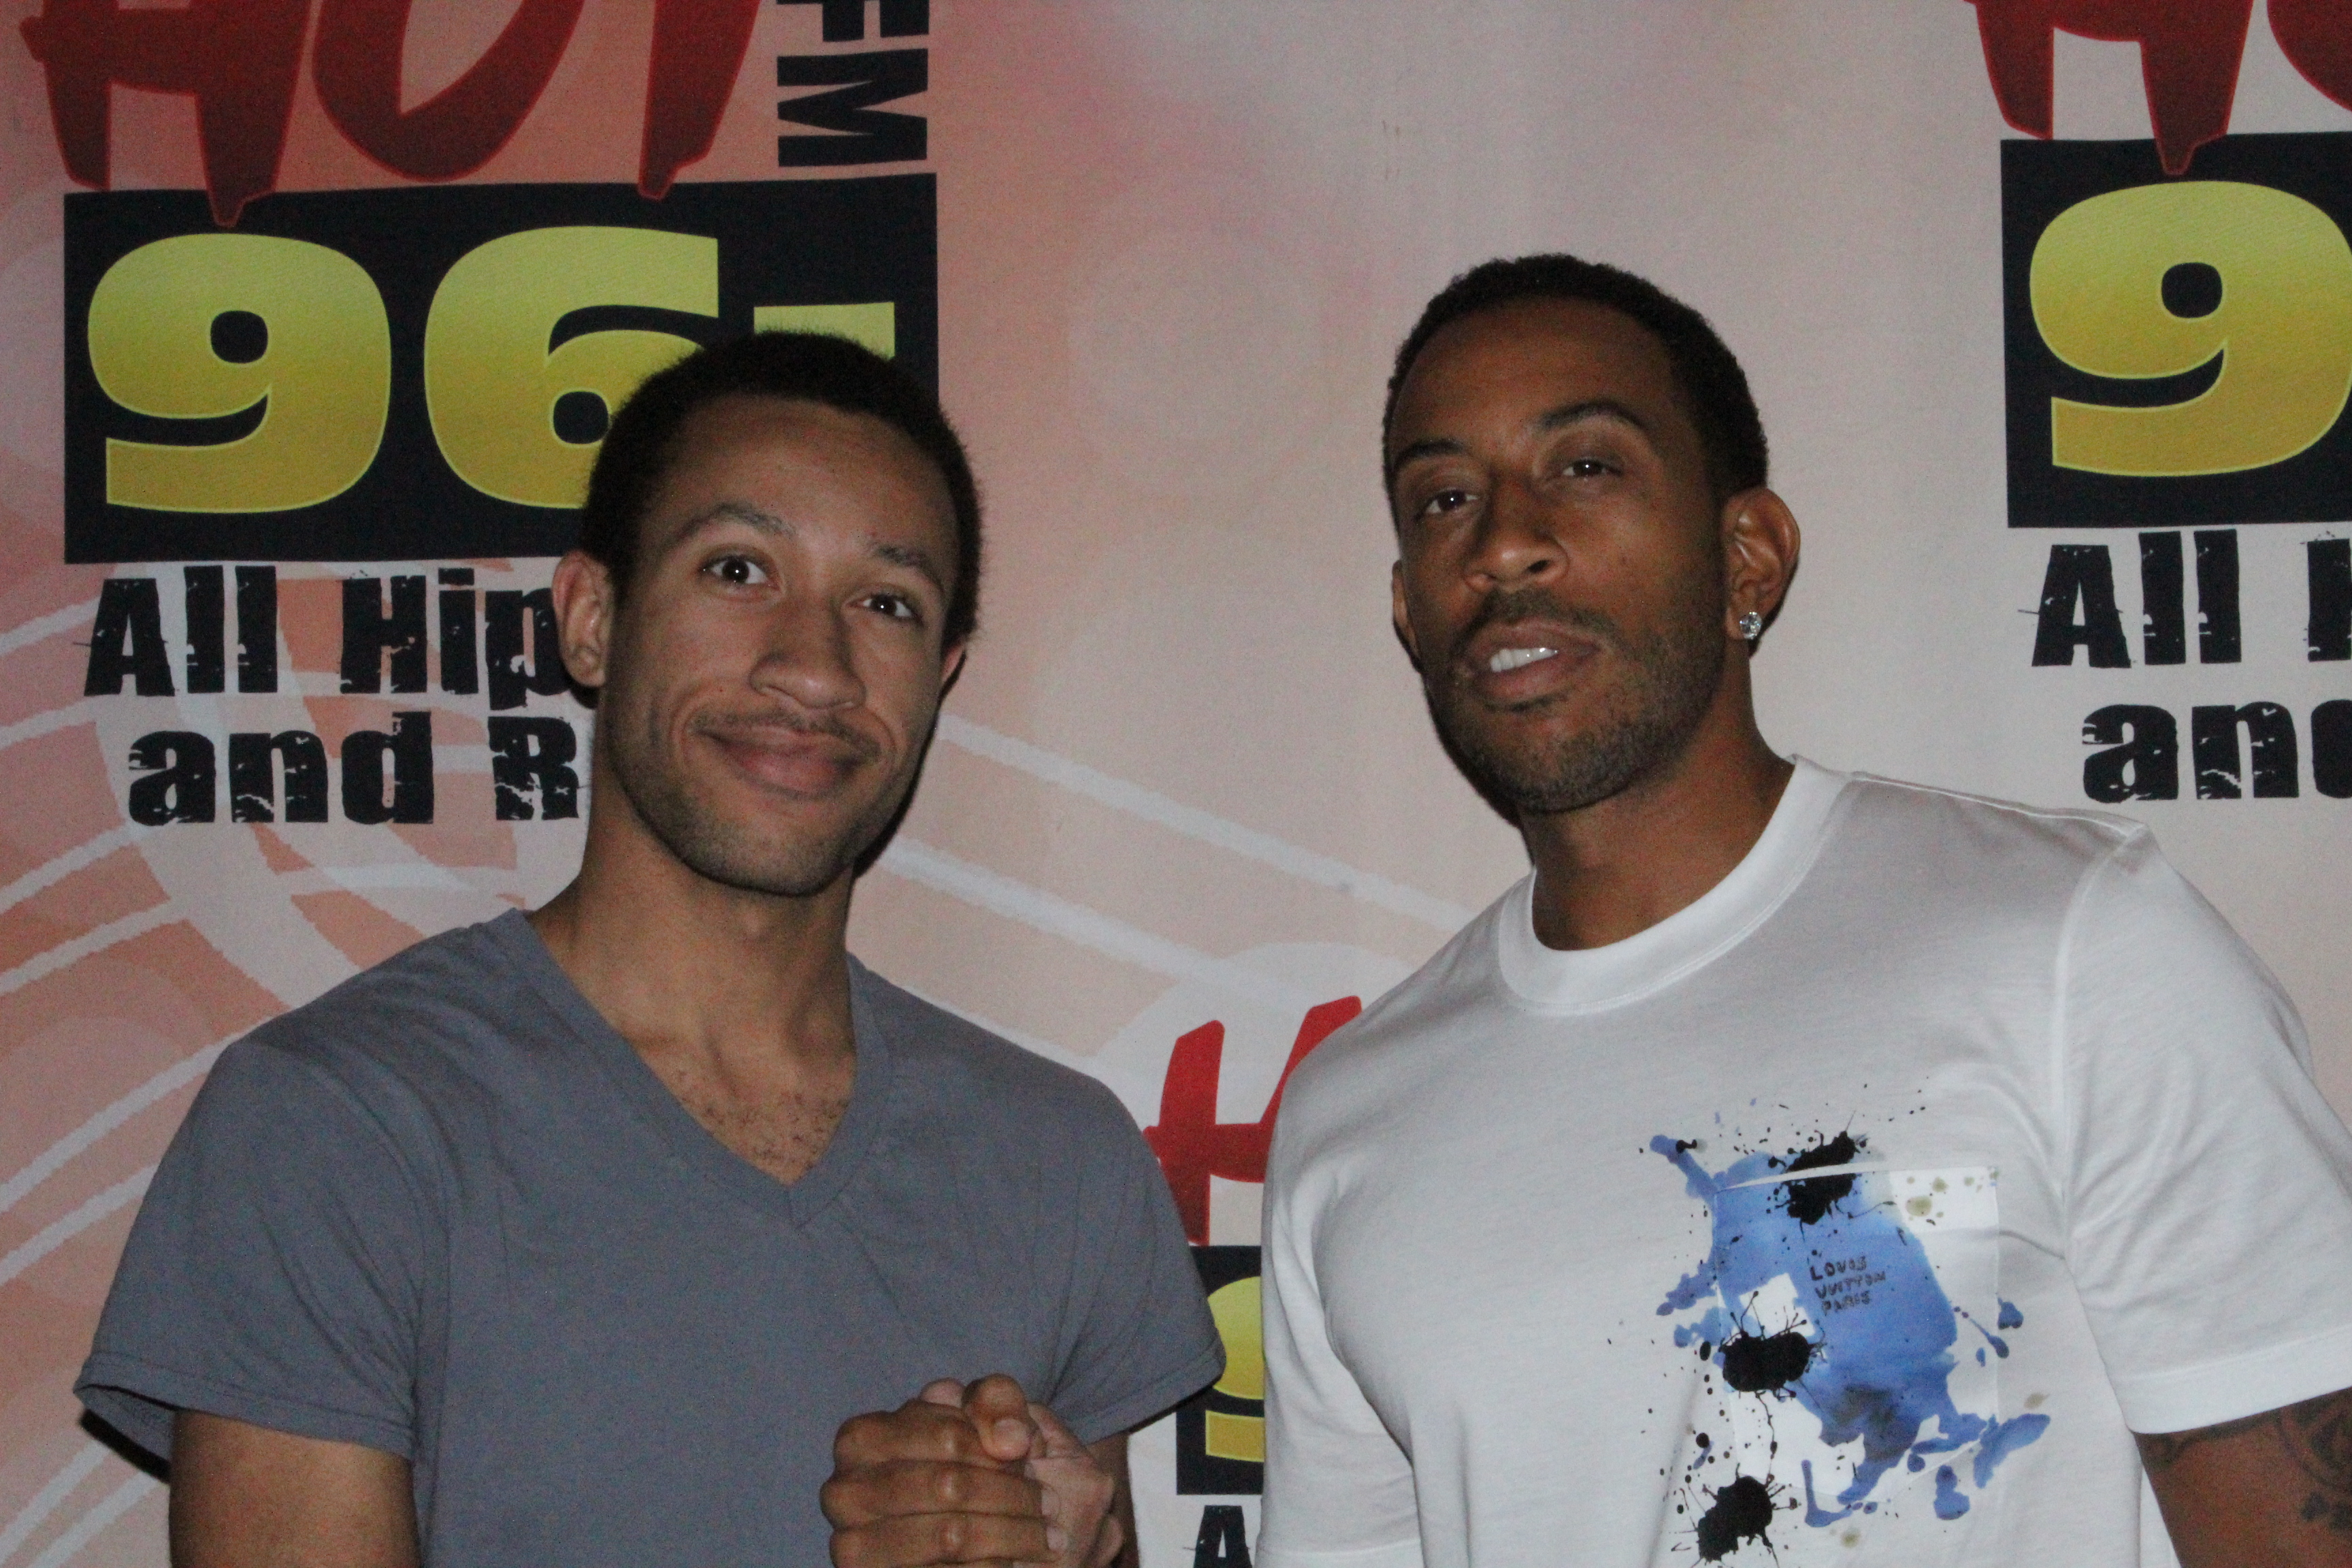 Ludacris Meet & Greet Photos